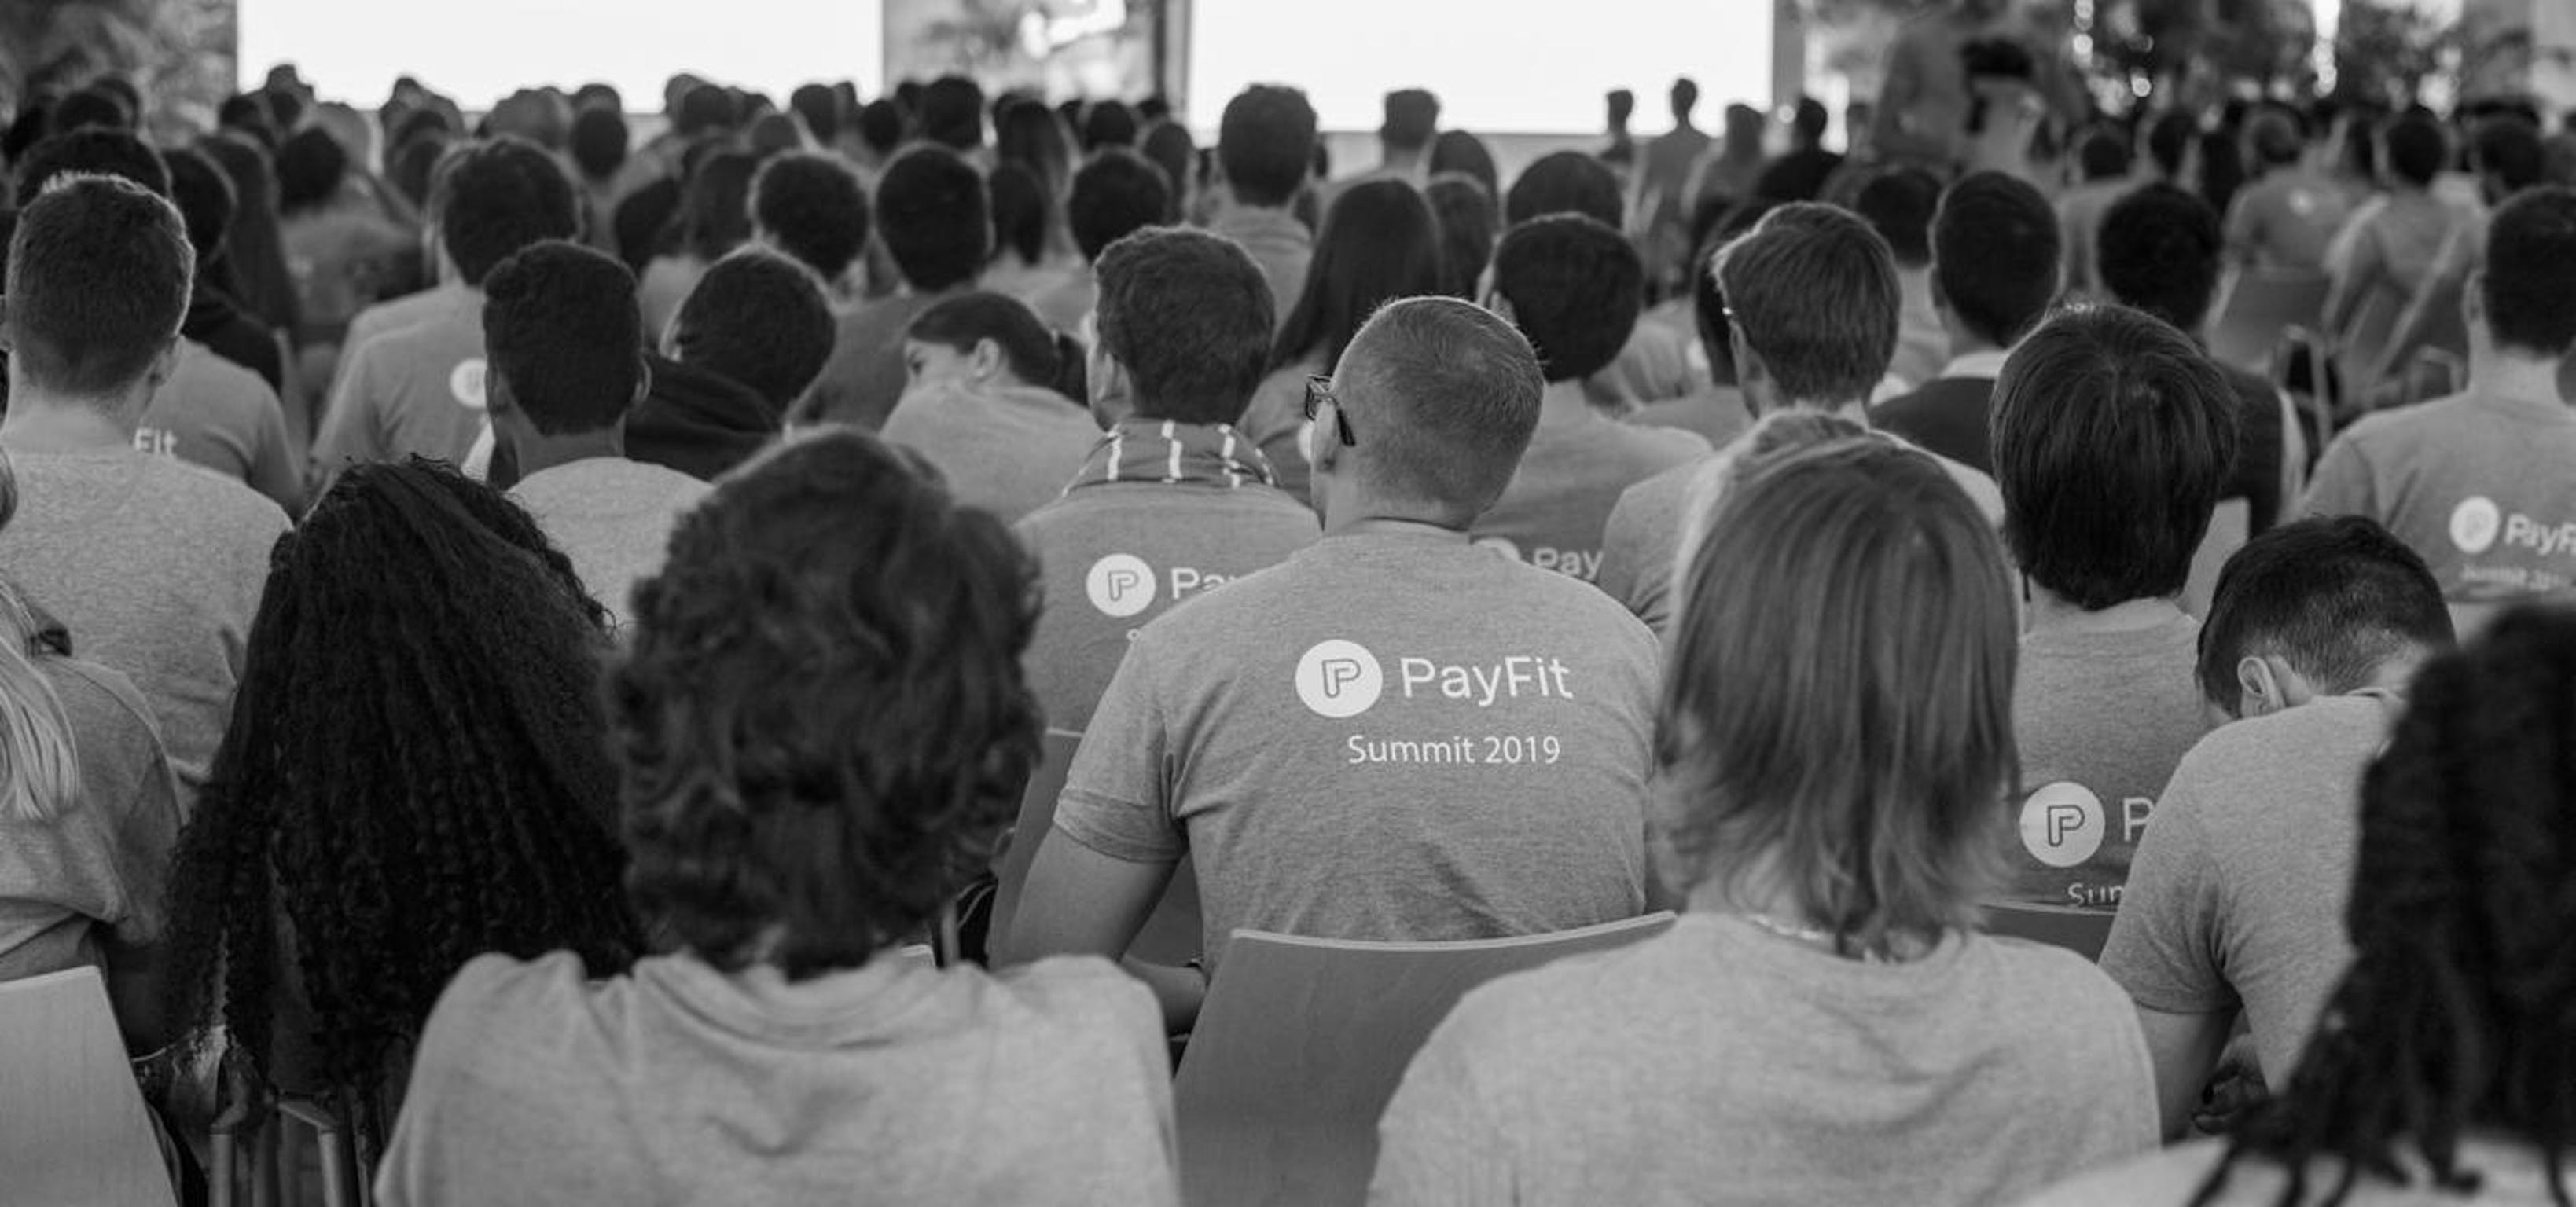 The PayFit Summit, 2019.